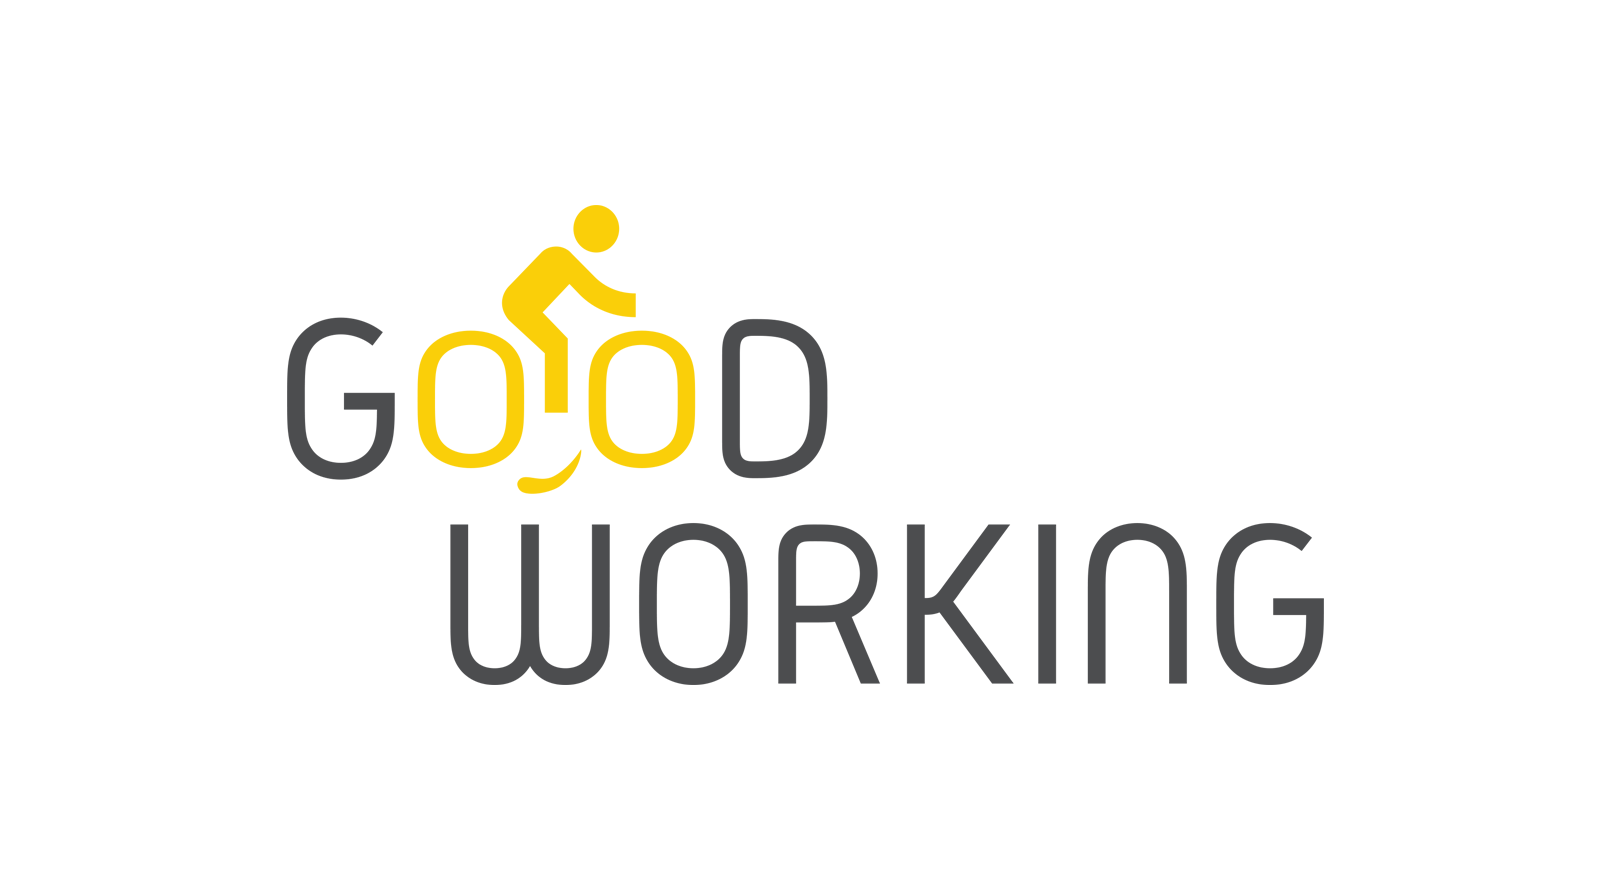 Logotipo_GoodWorking.png